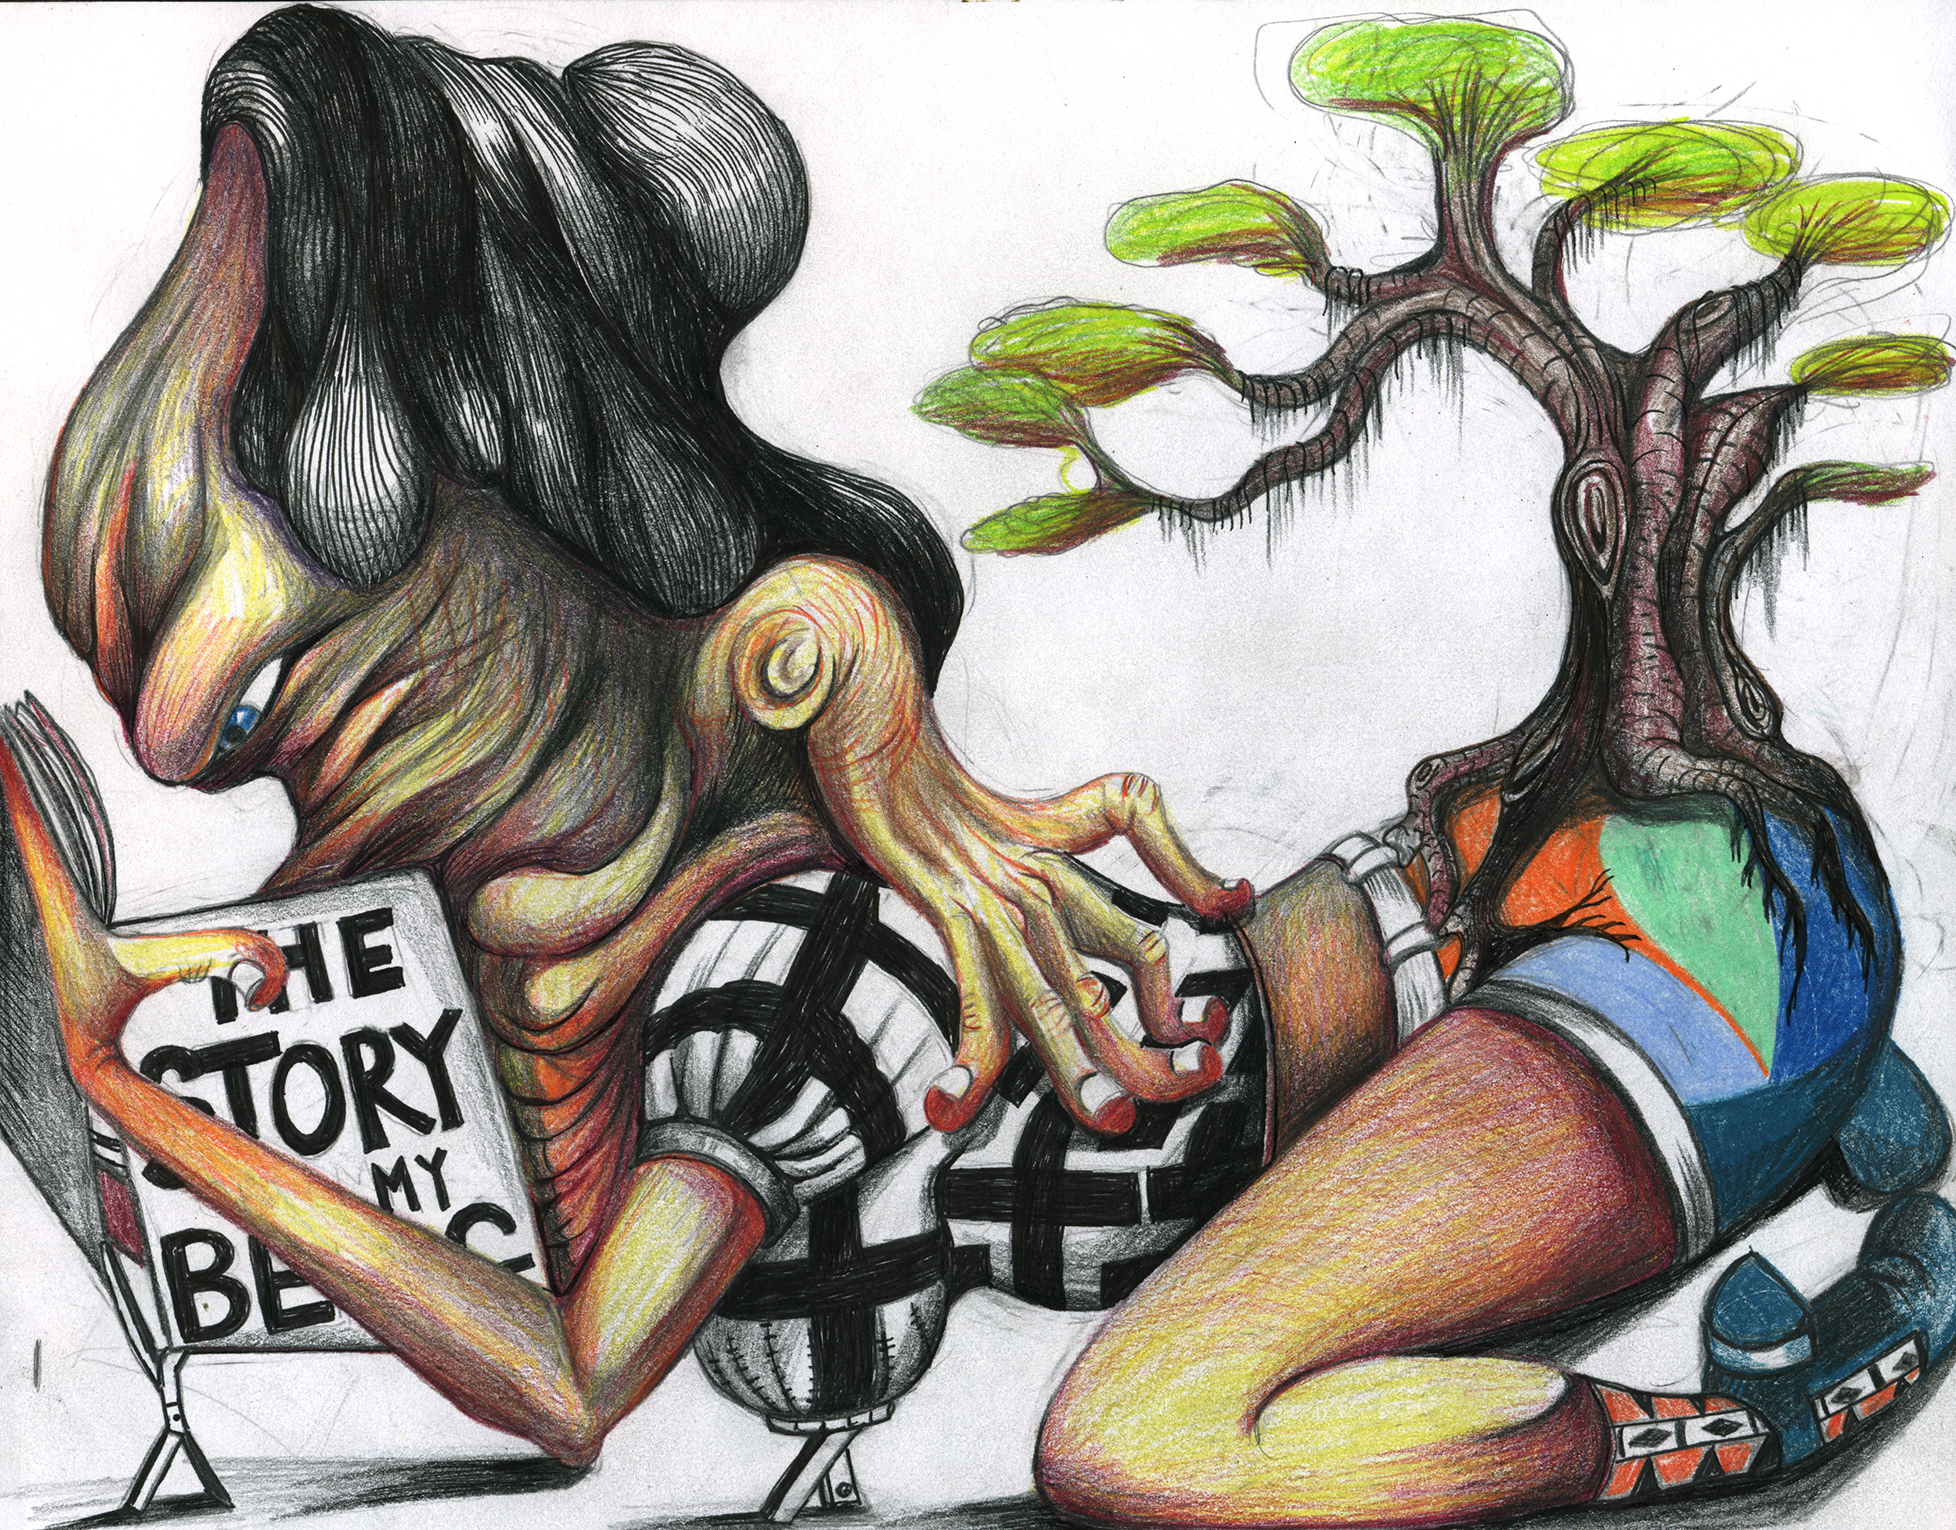 """Florine reads the story of her beginning, 11x 8"""", color pencil on paper"""